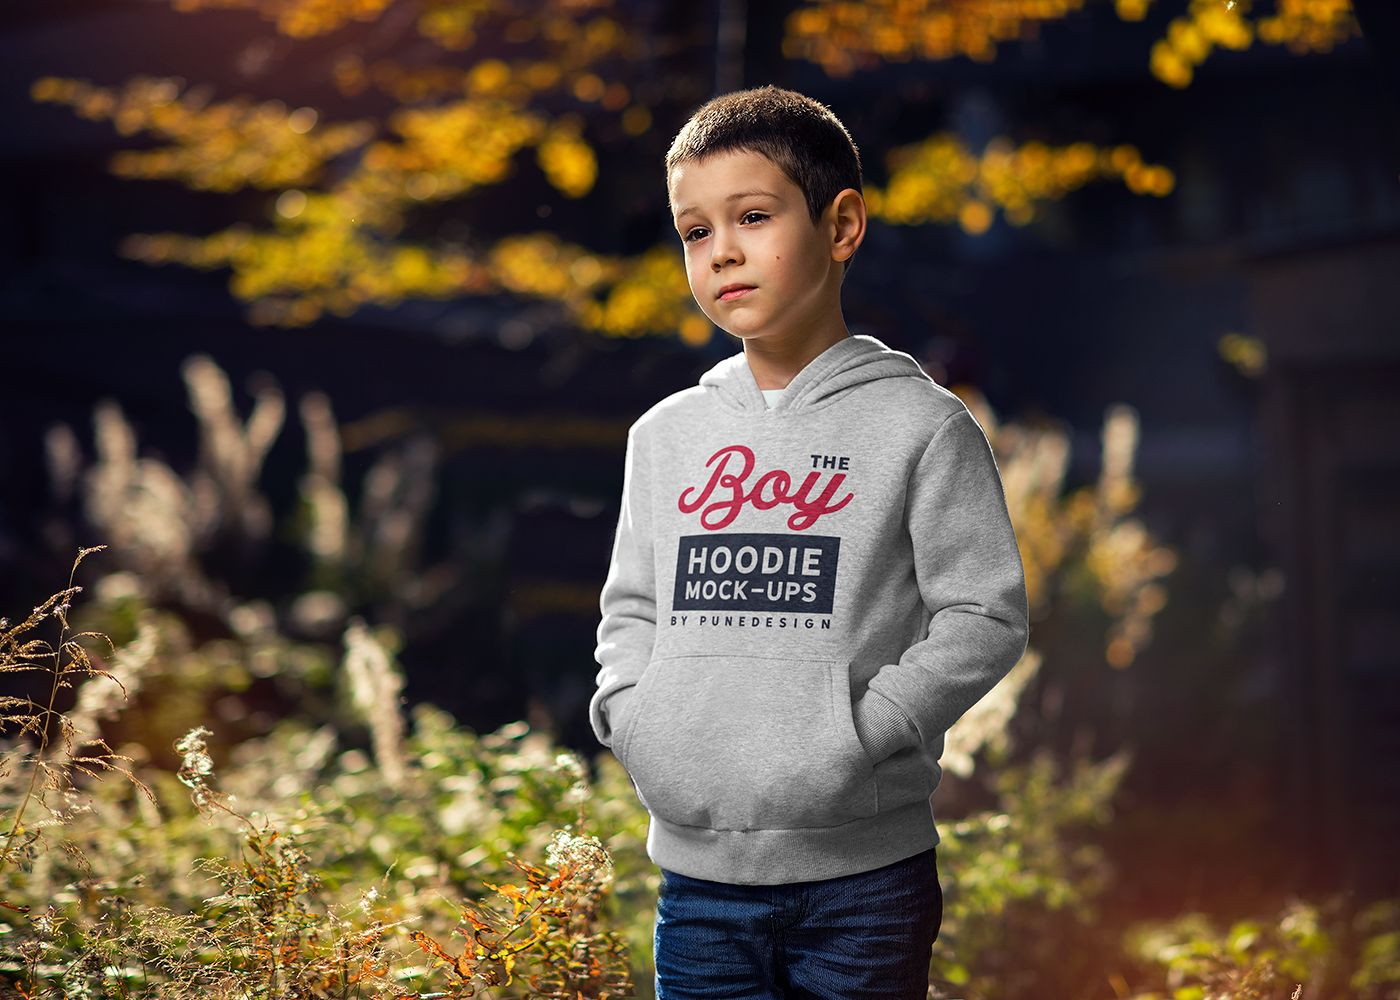 Boy_Hoodie_Mock-Up_by_PuneDesign-03